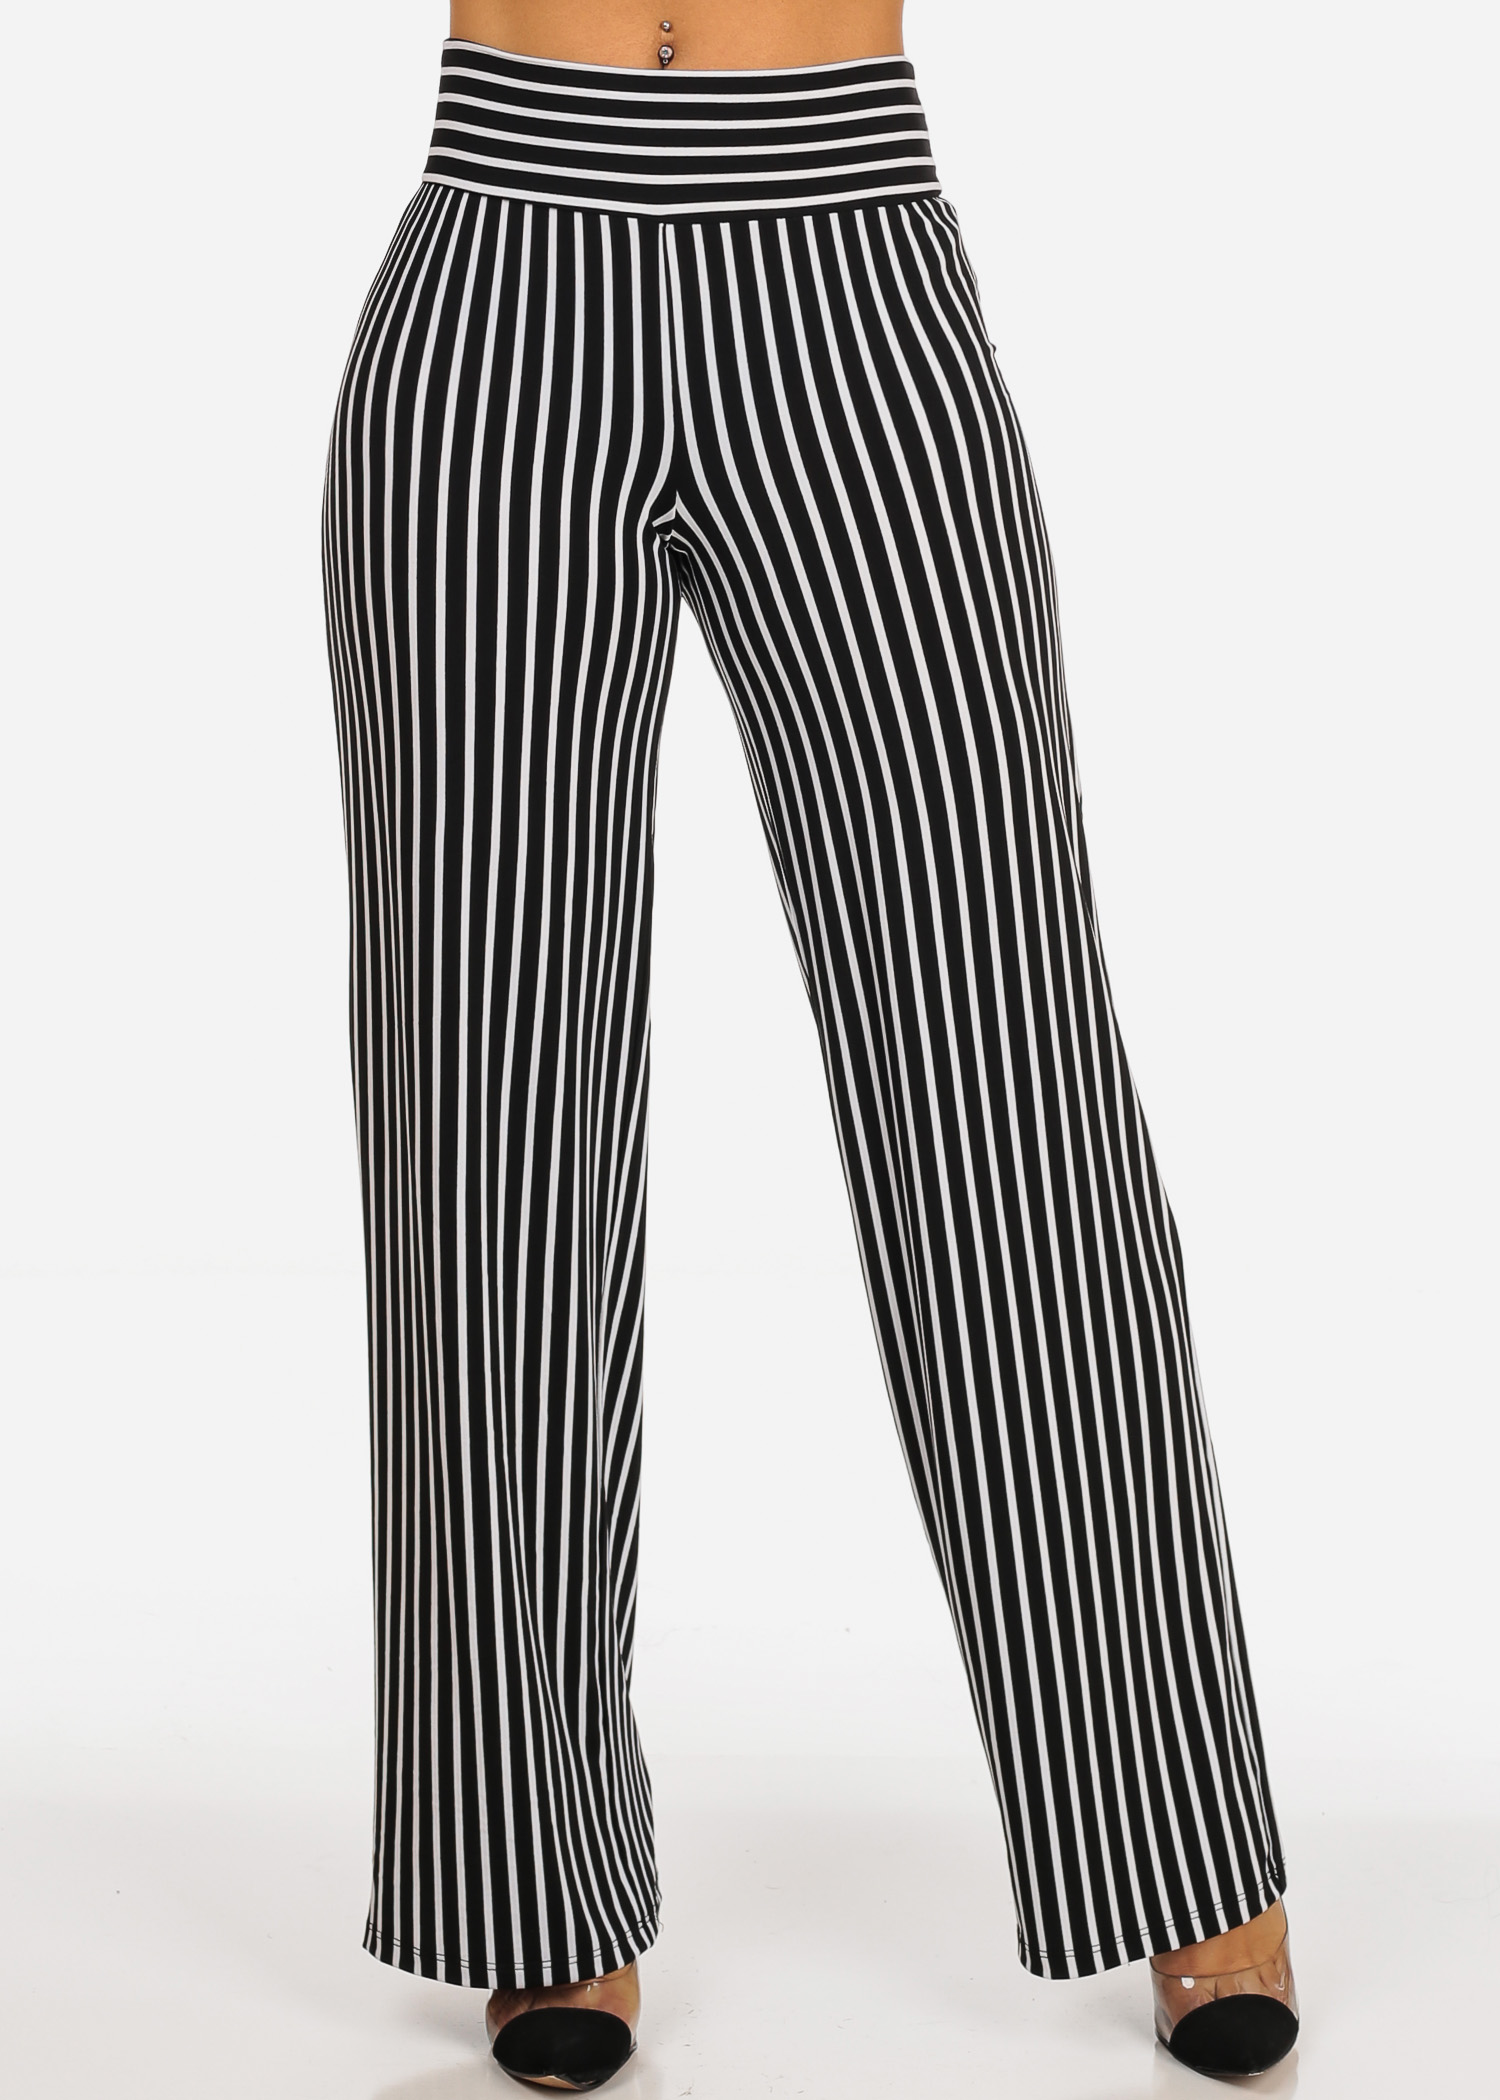 Womens Juniors Casual Stylish Stretchy Pull-On High Rise Black Striped Print Pants 40920U